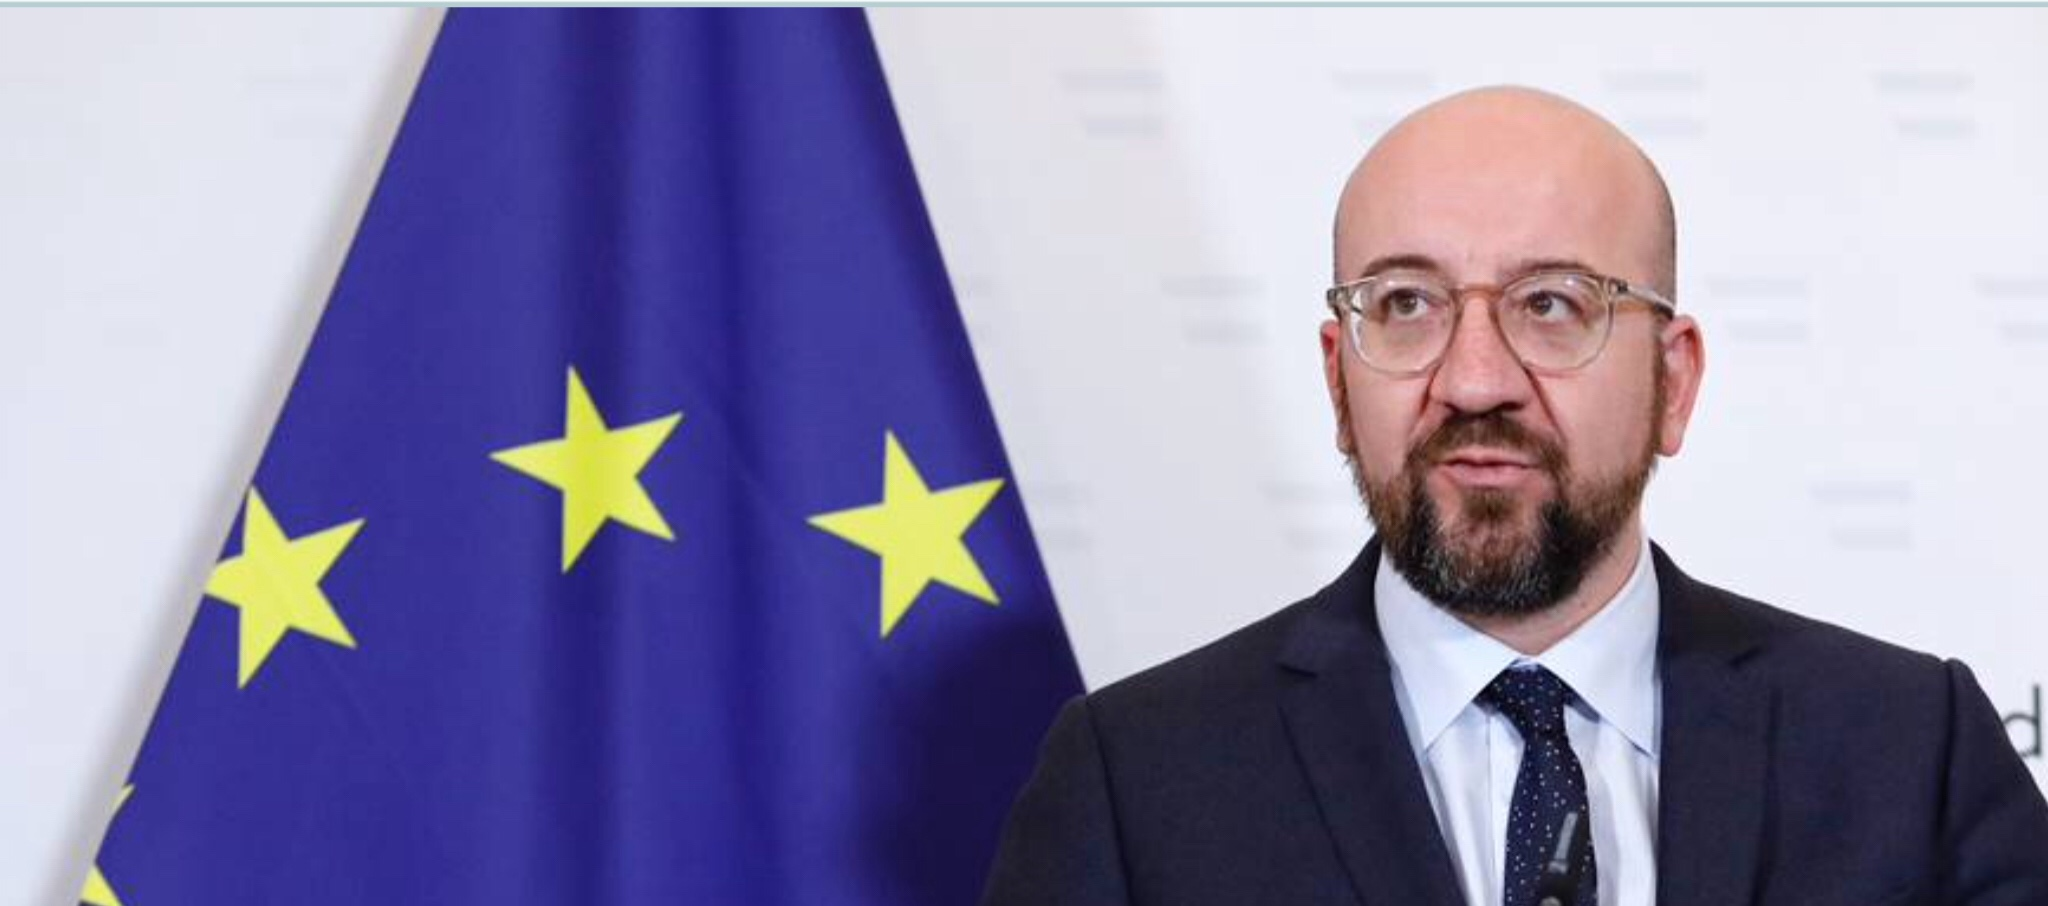 Michel invites to EU Council